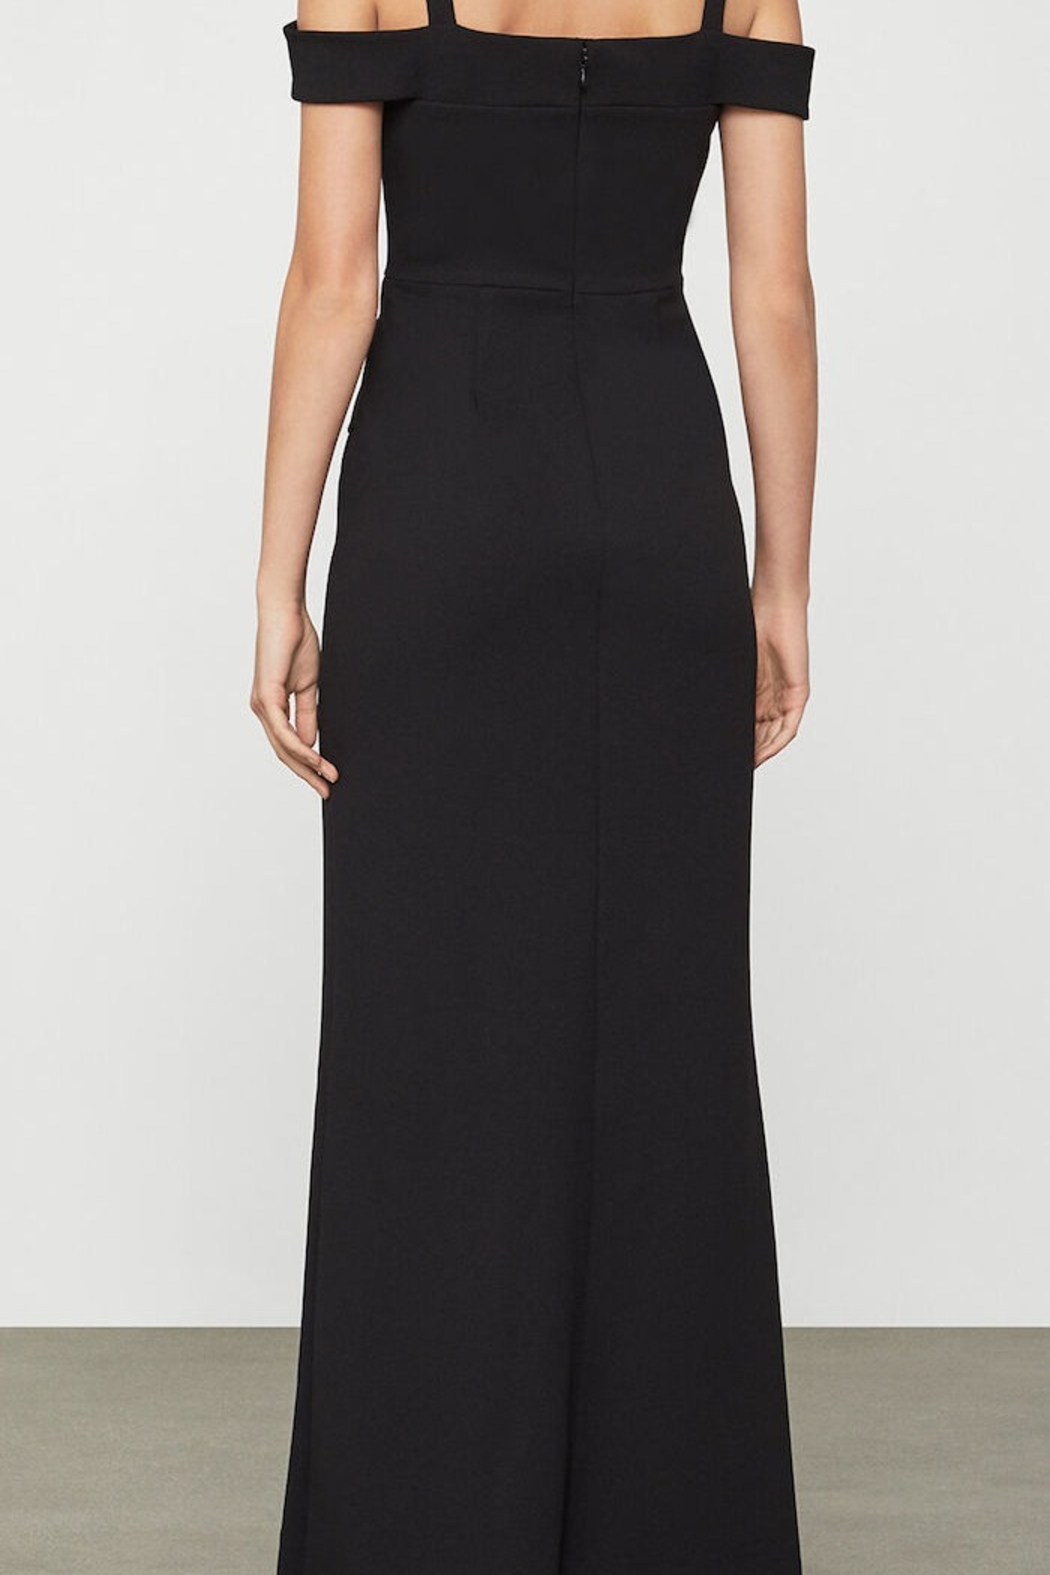 BCBG MAXAZRIA Off Shoulder Gown - Front Full Image